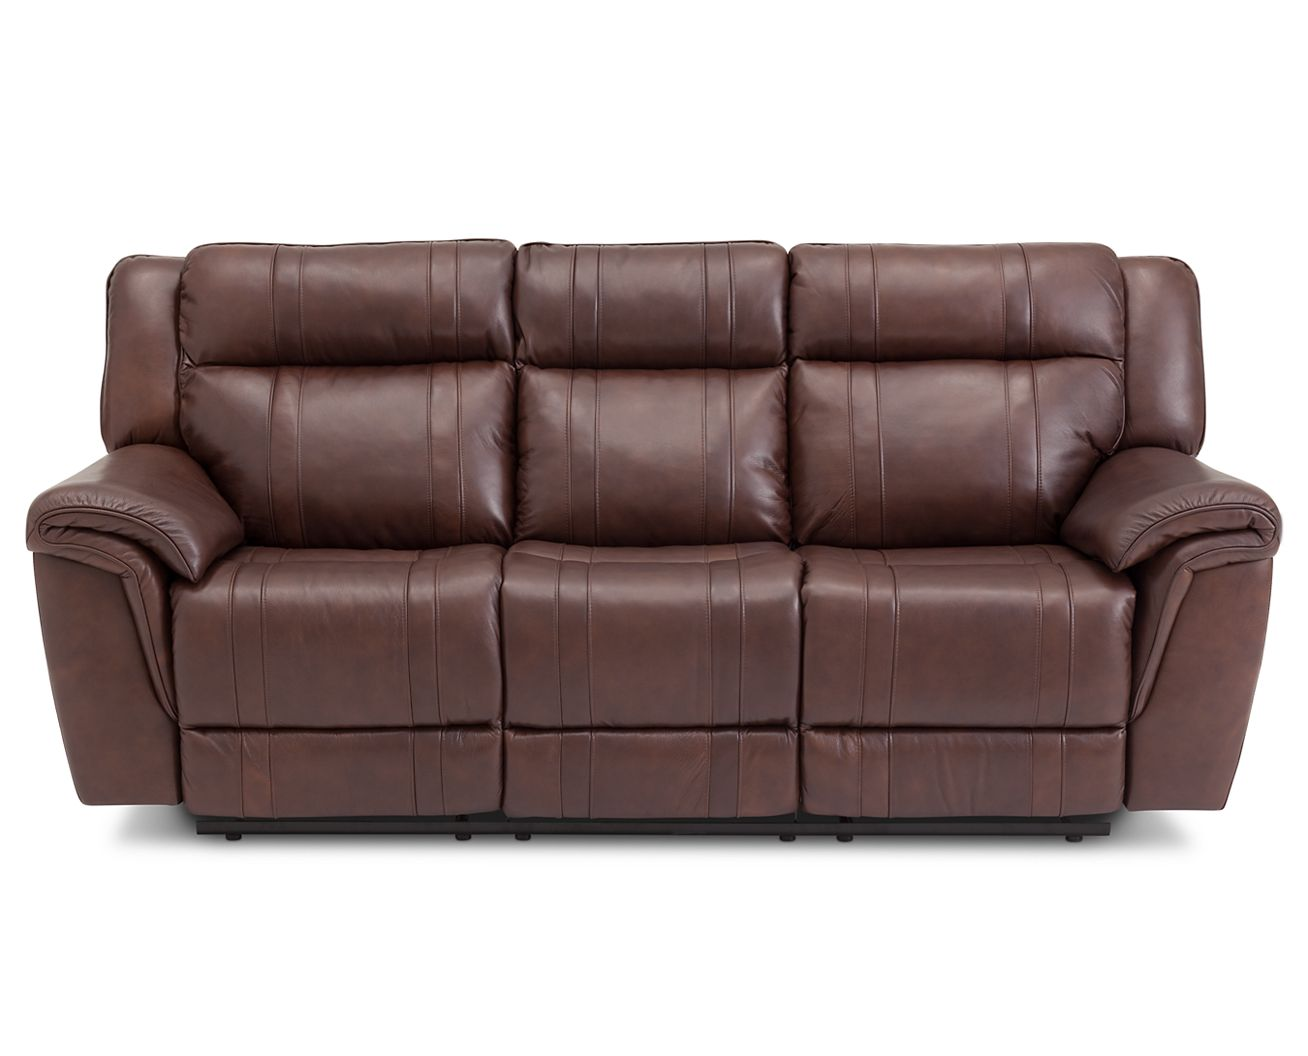 San Mateo Bedroom Furniture San Mateo Reclining Sofa Furniture Row